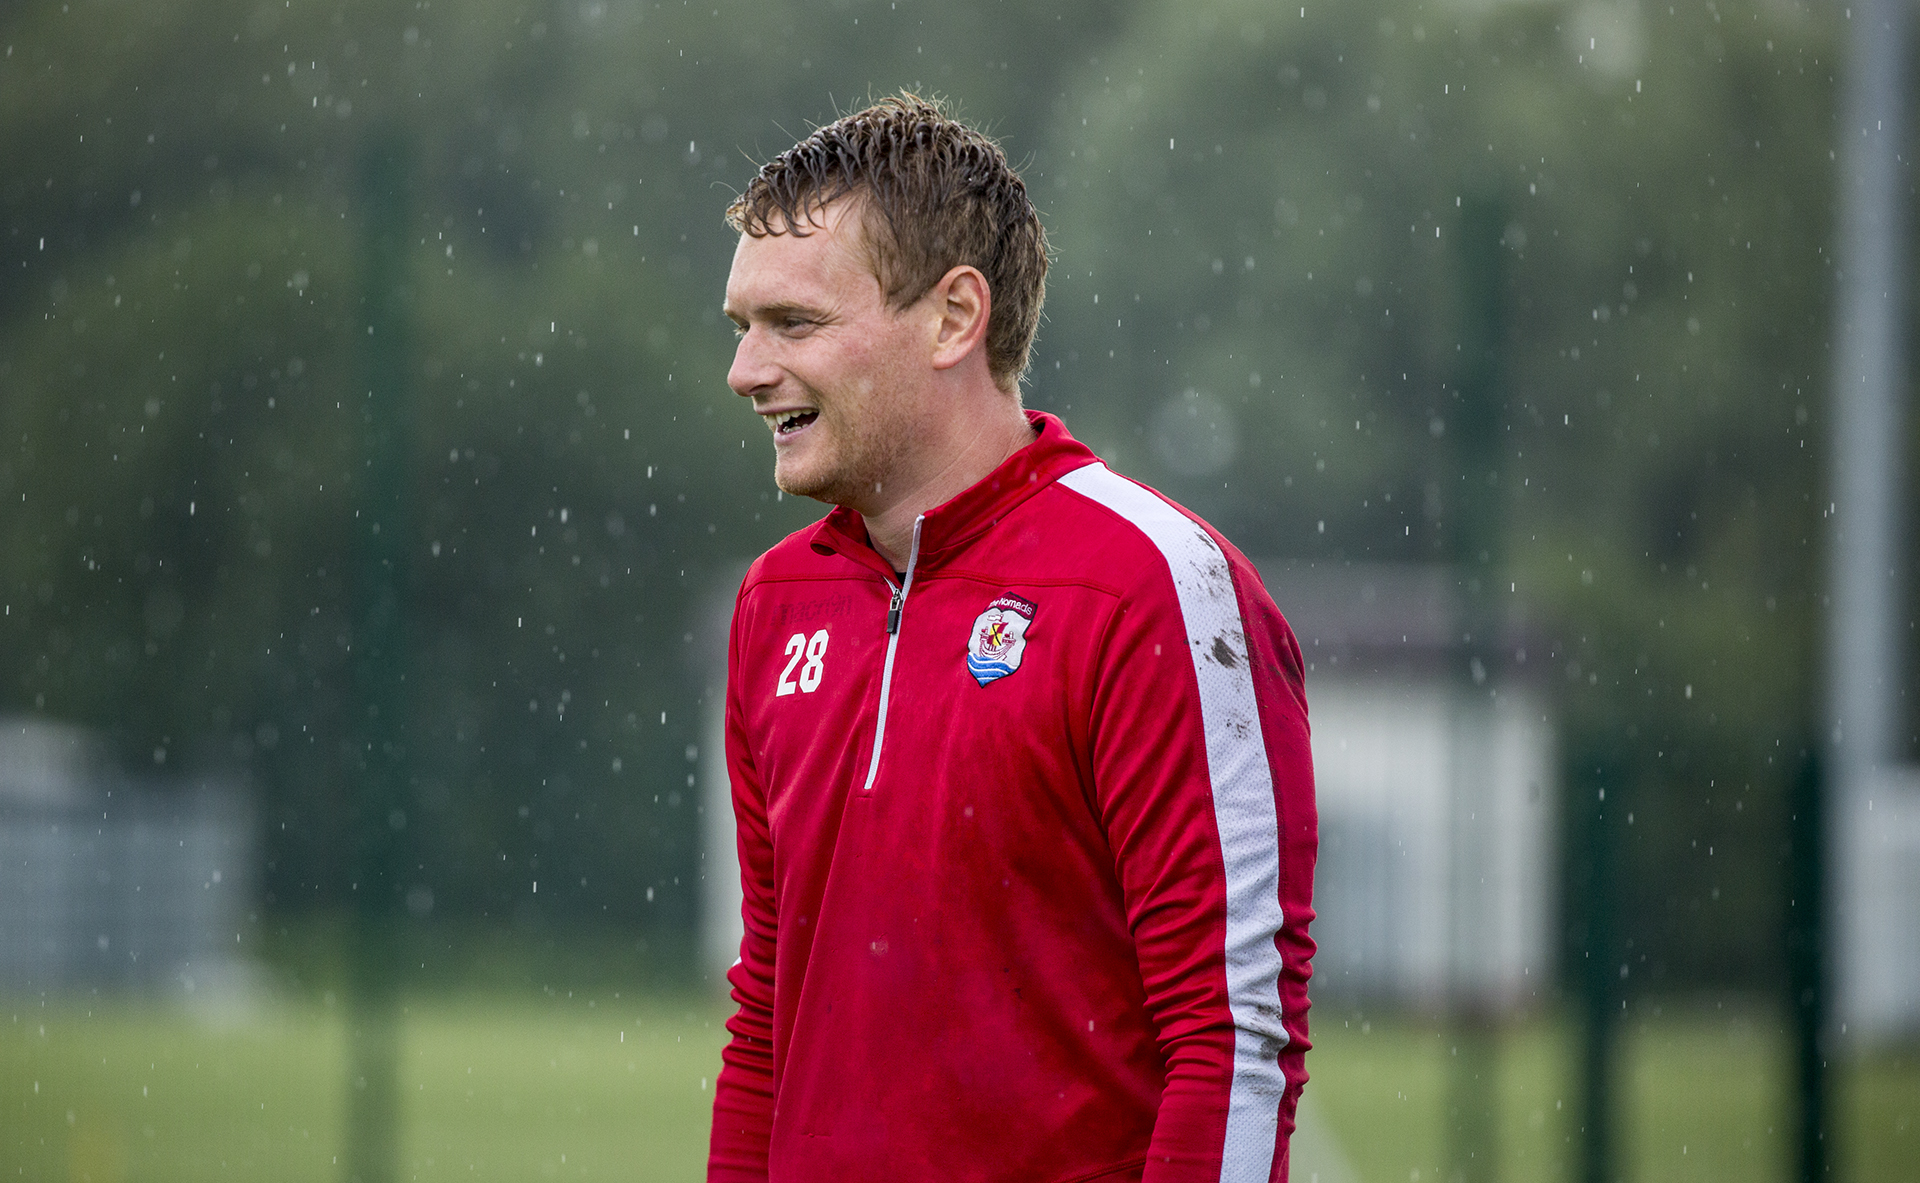 Jon Rushton has left Connah's Quay Nomads